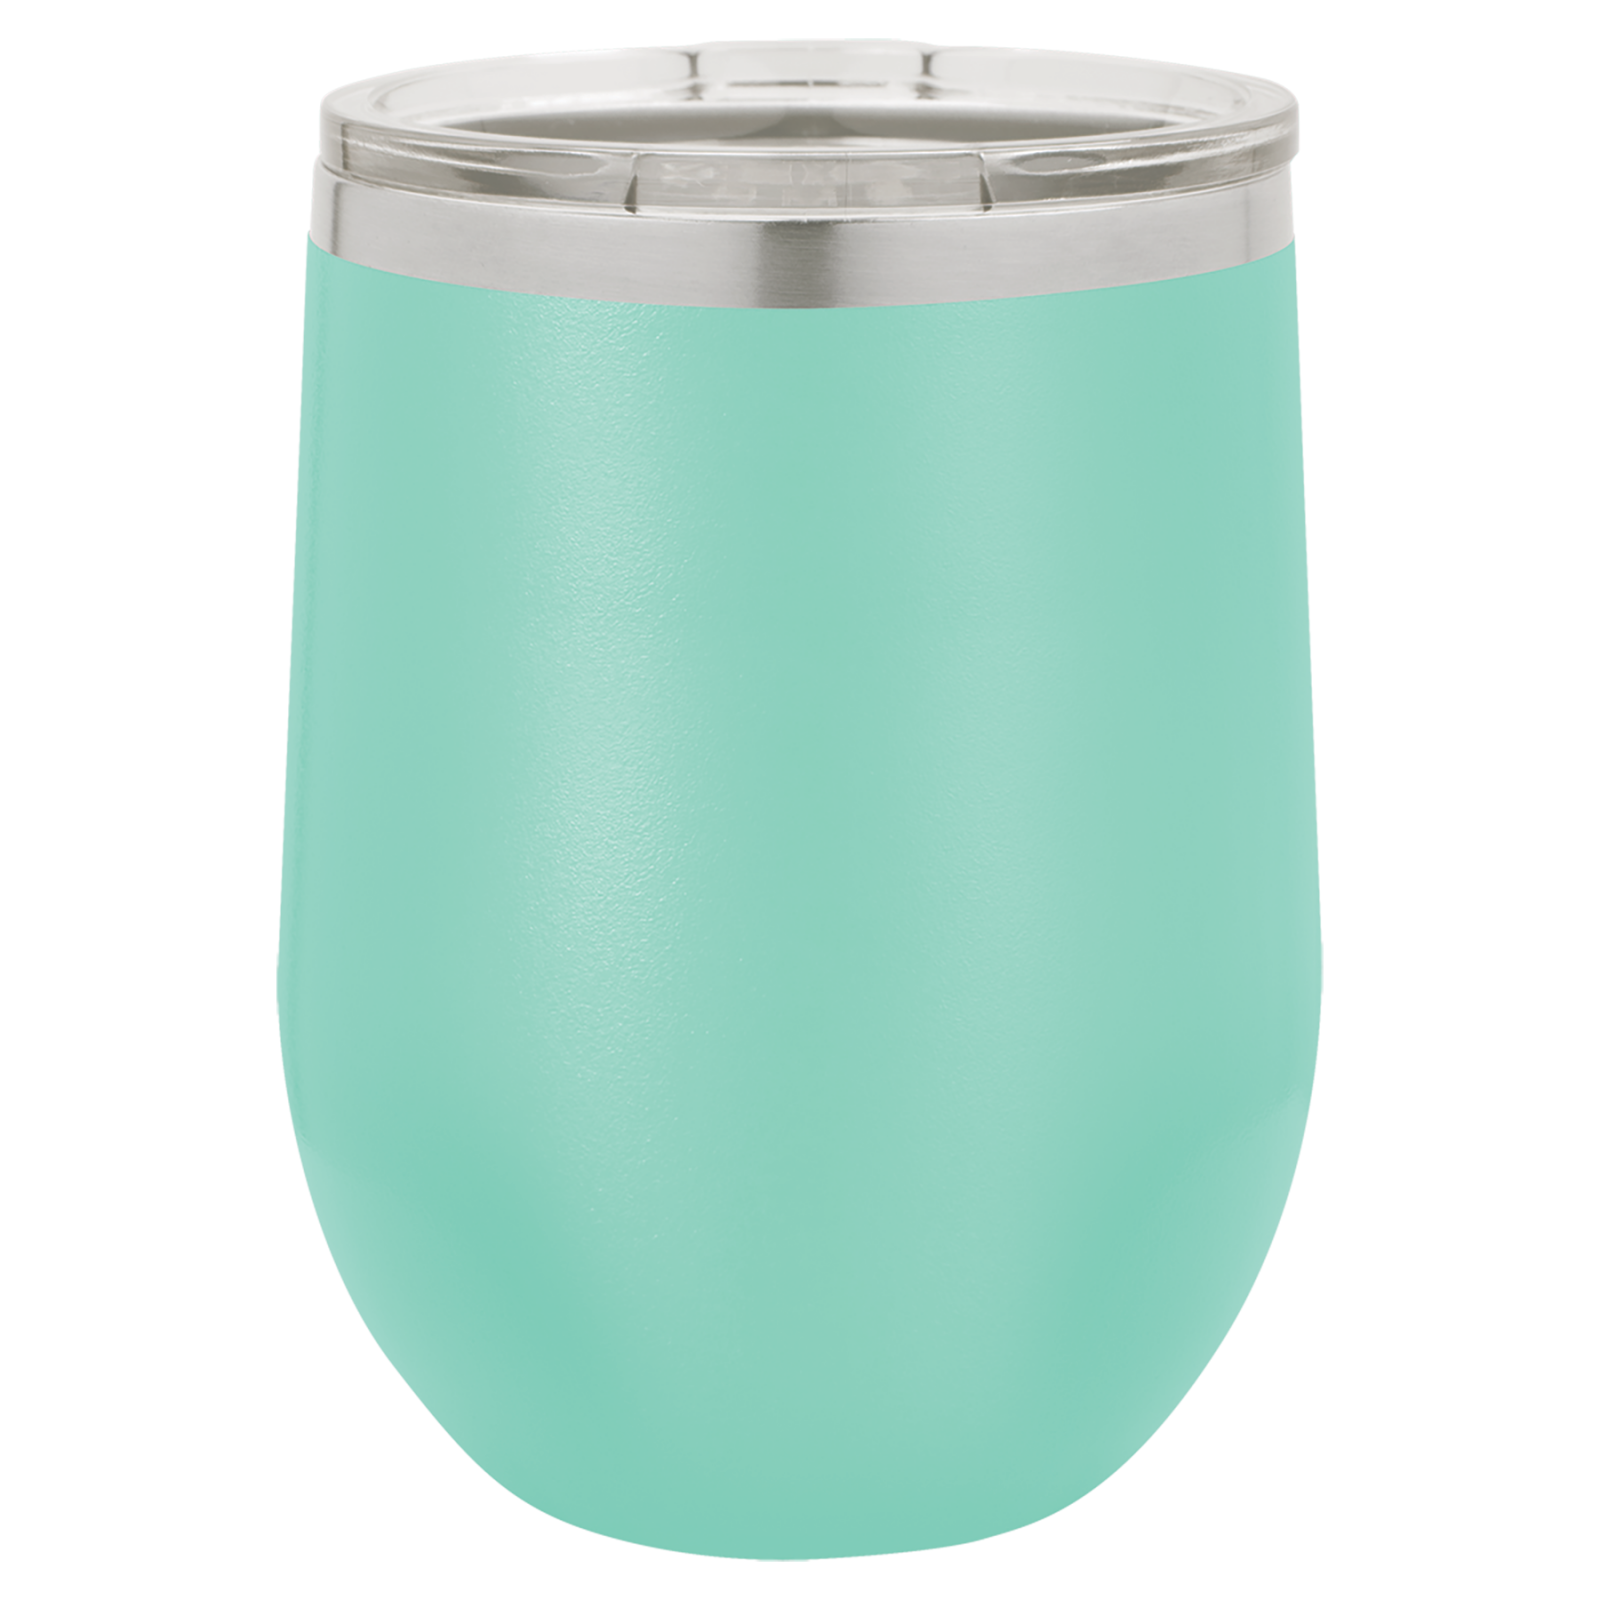 12 oz Stemless Wine Cup TEAL